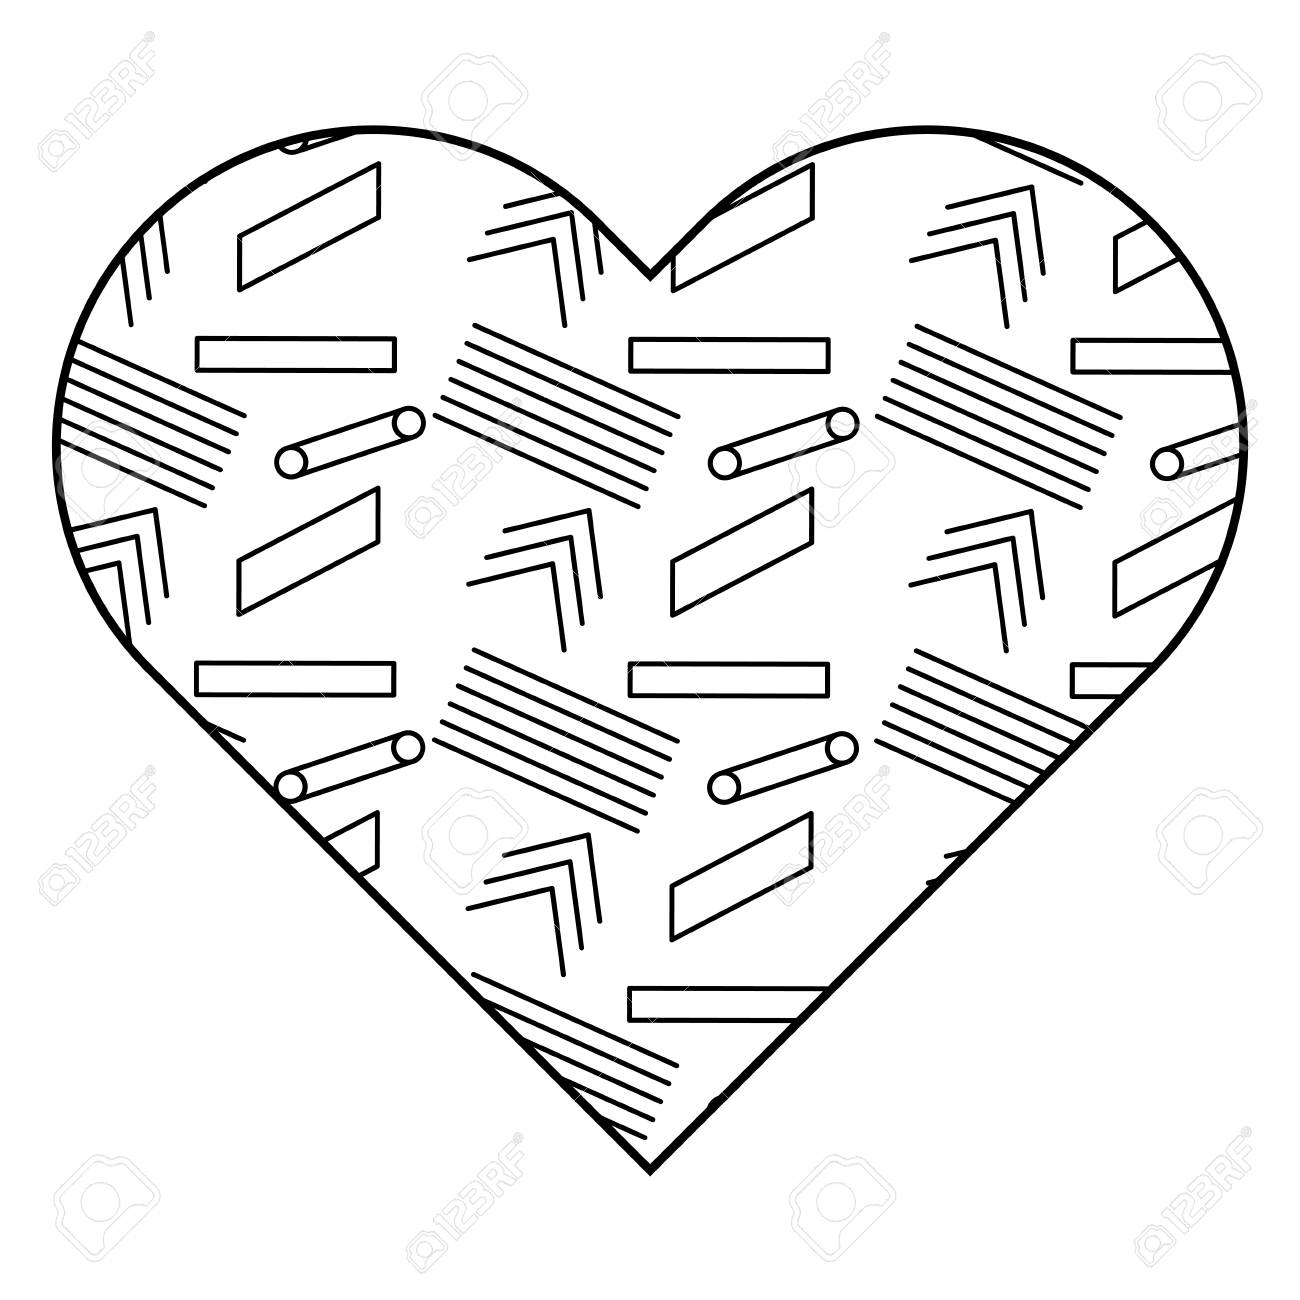 label shape heart with different geometric figures. vector